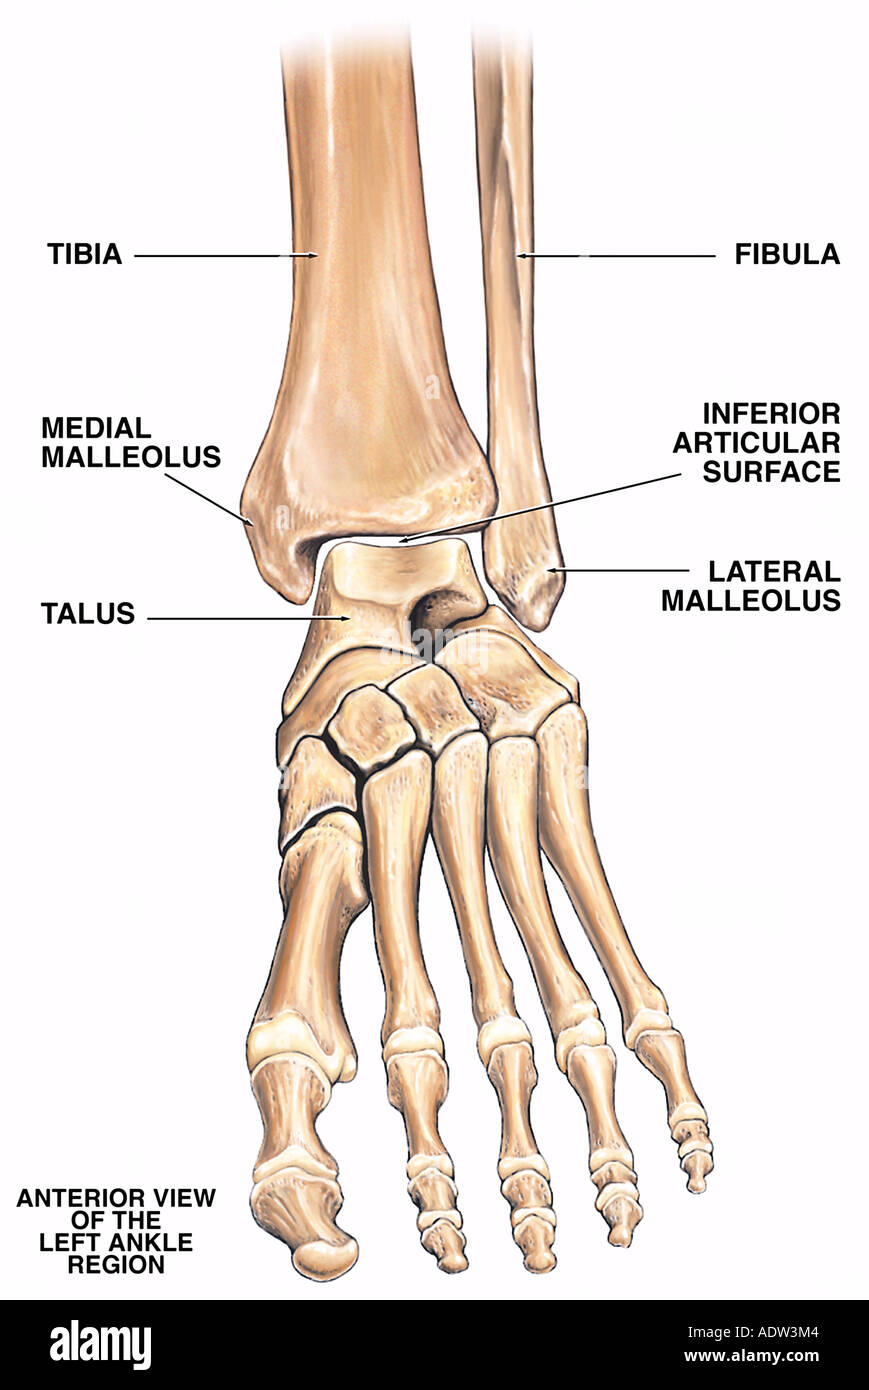 Normal Anatomy of the Left Ankle Region Stock Photo: 7711619 - Alamy